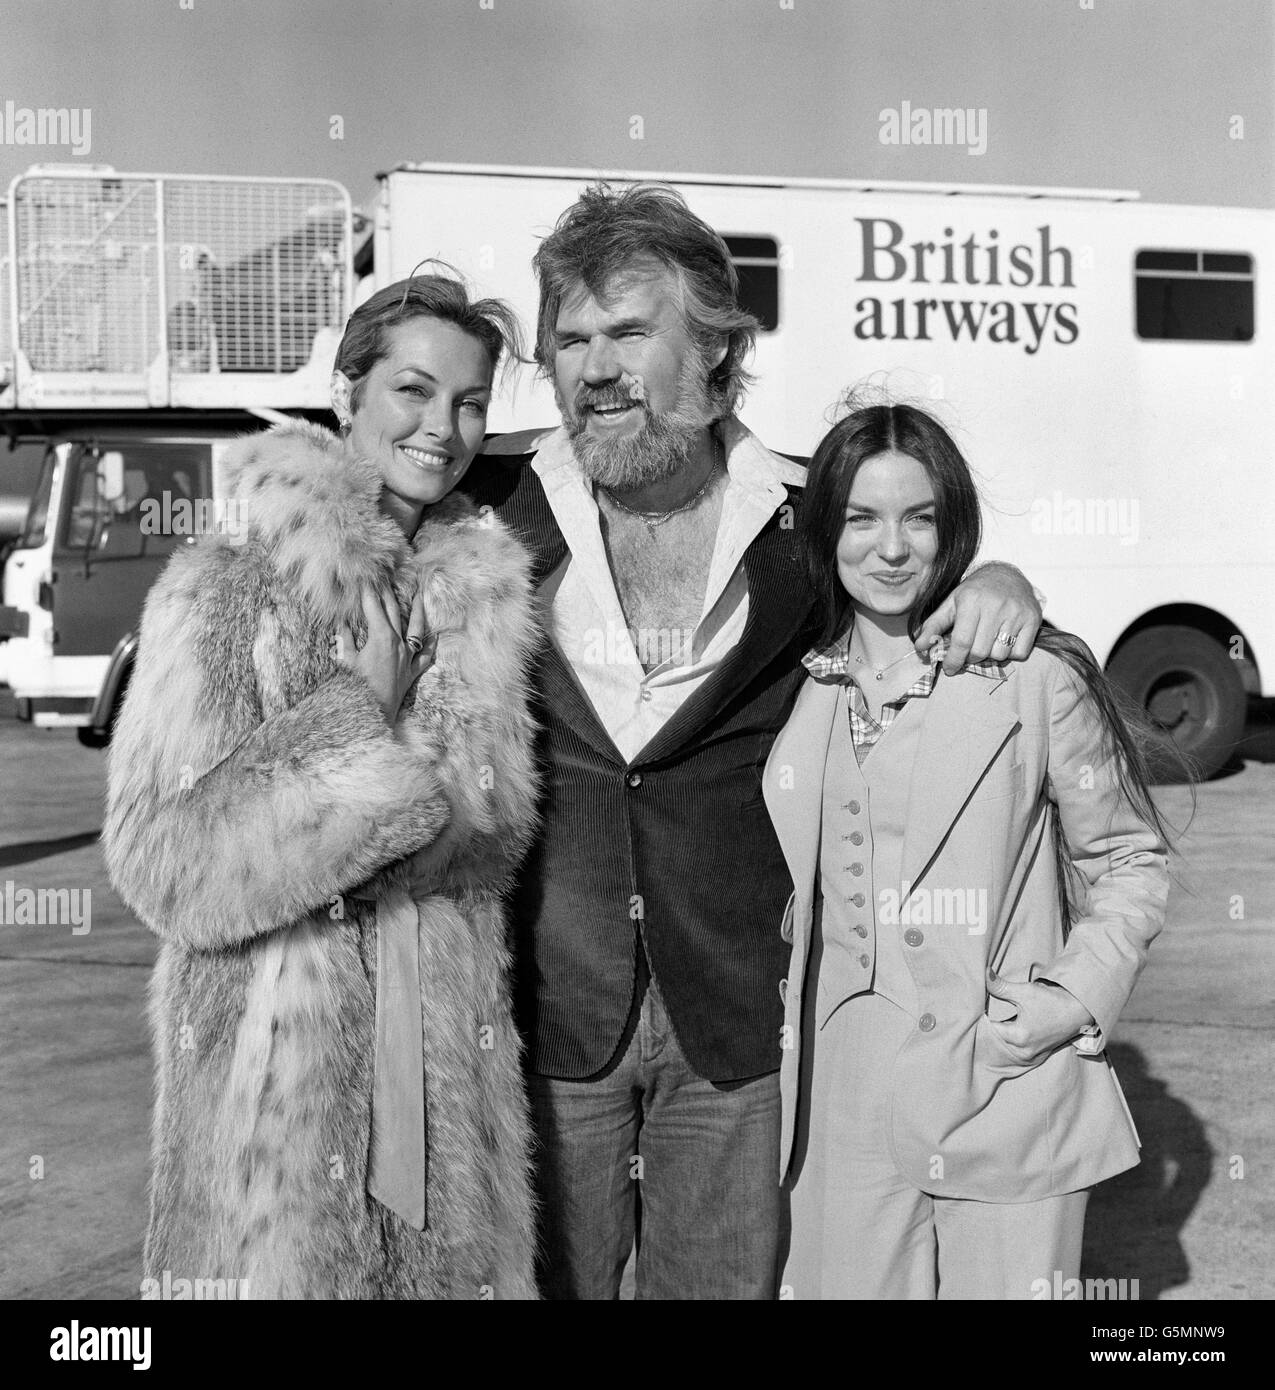 Kenny Rodgers and Crystal Gayle - Heathrow Airport - London - Stock Image